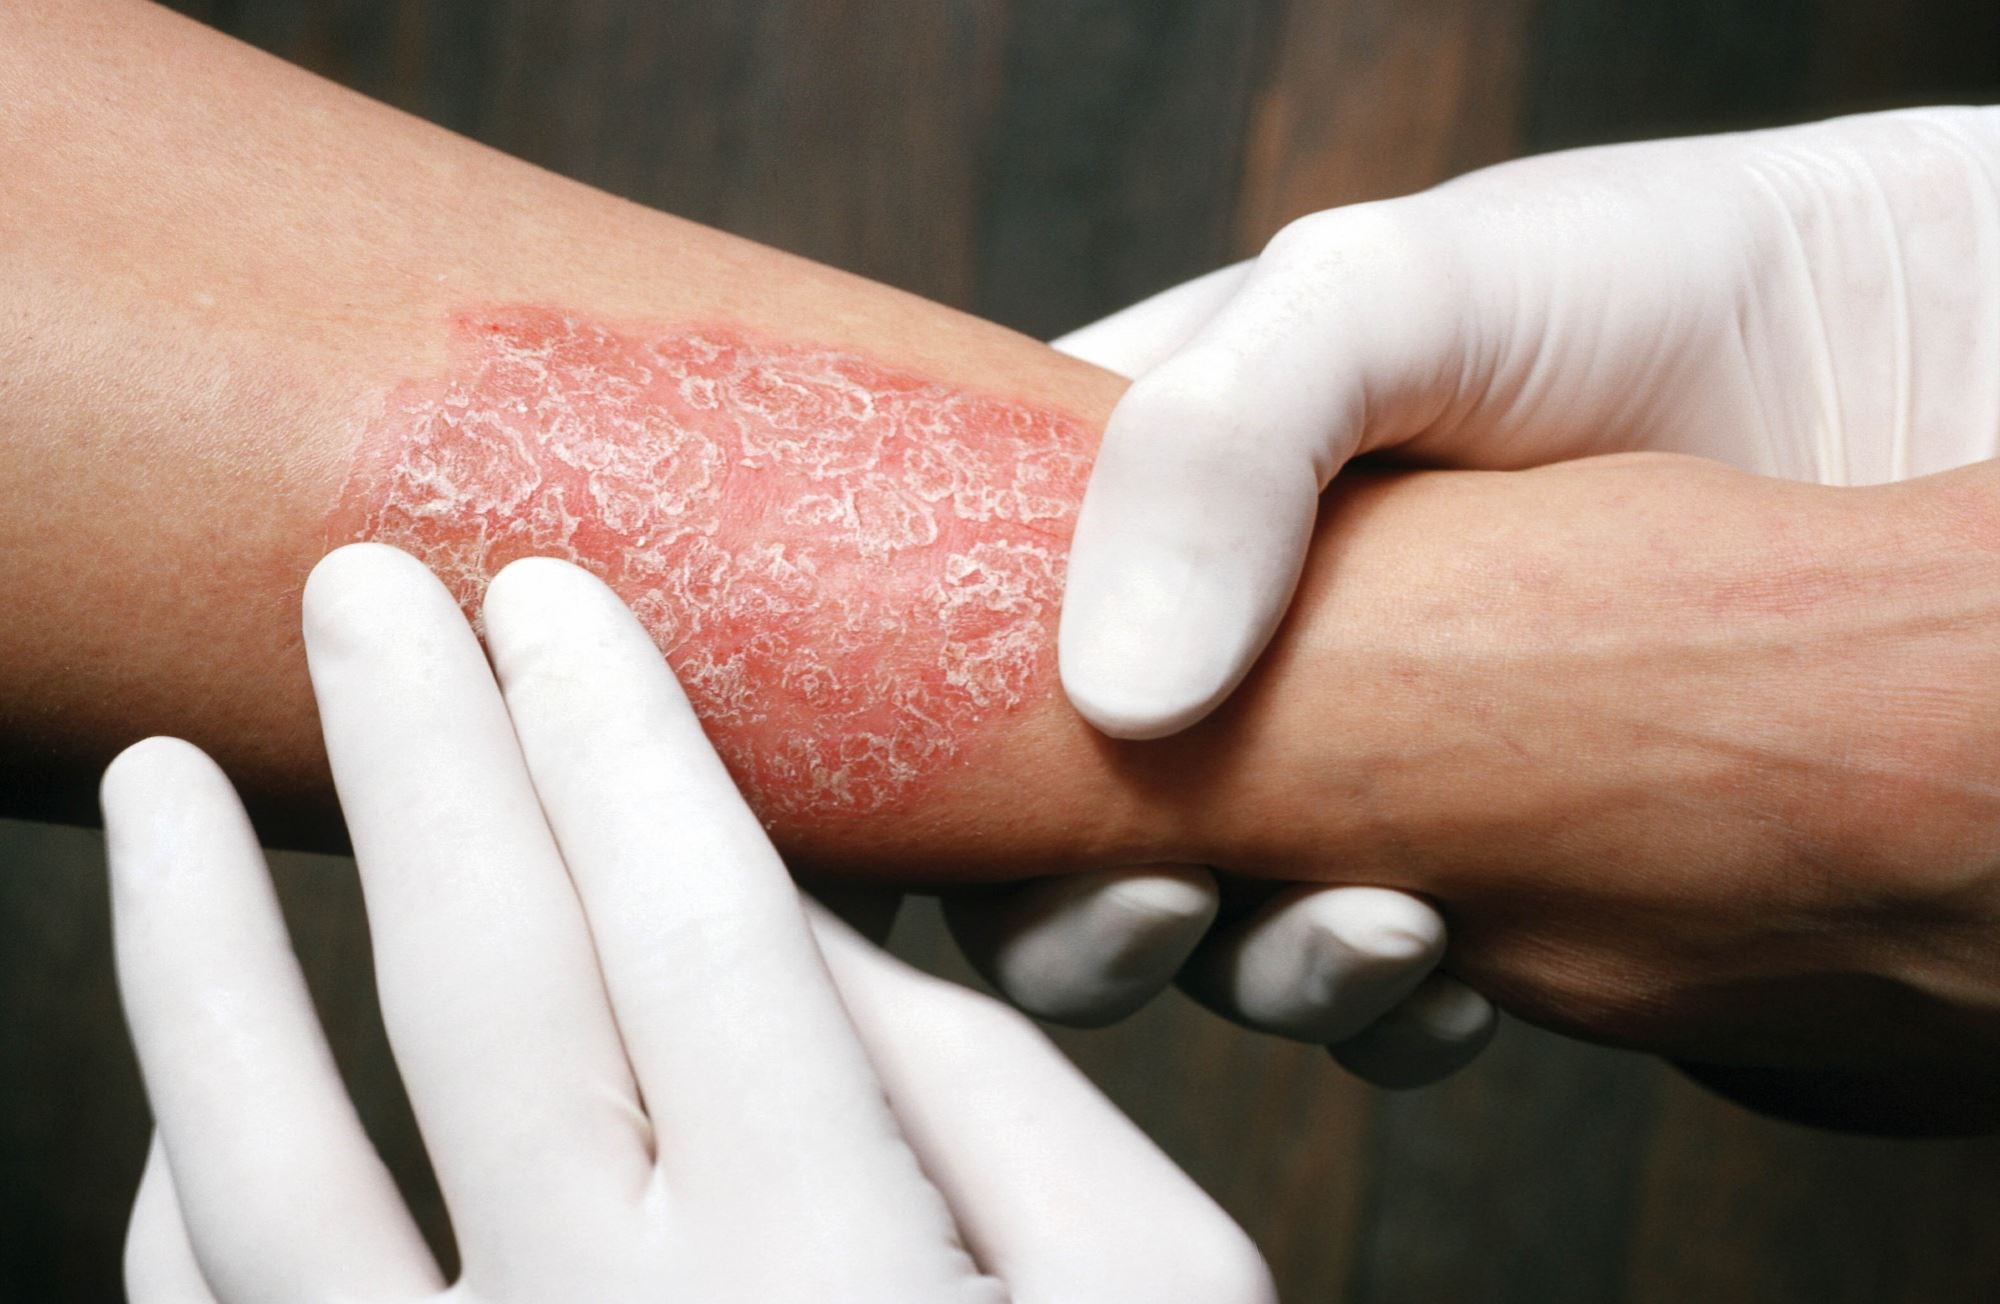 Psoriasis Treatment With Biologics Often Requires Multiple Courses, Treatment Changes